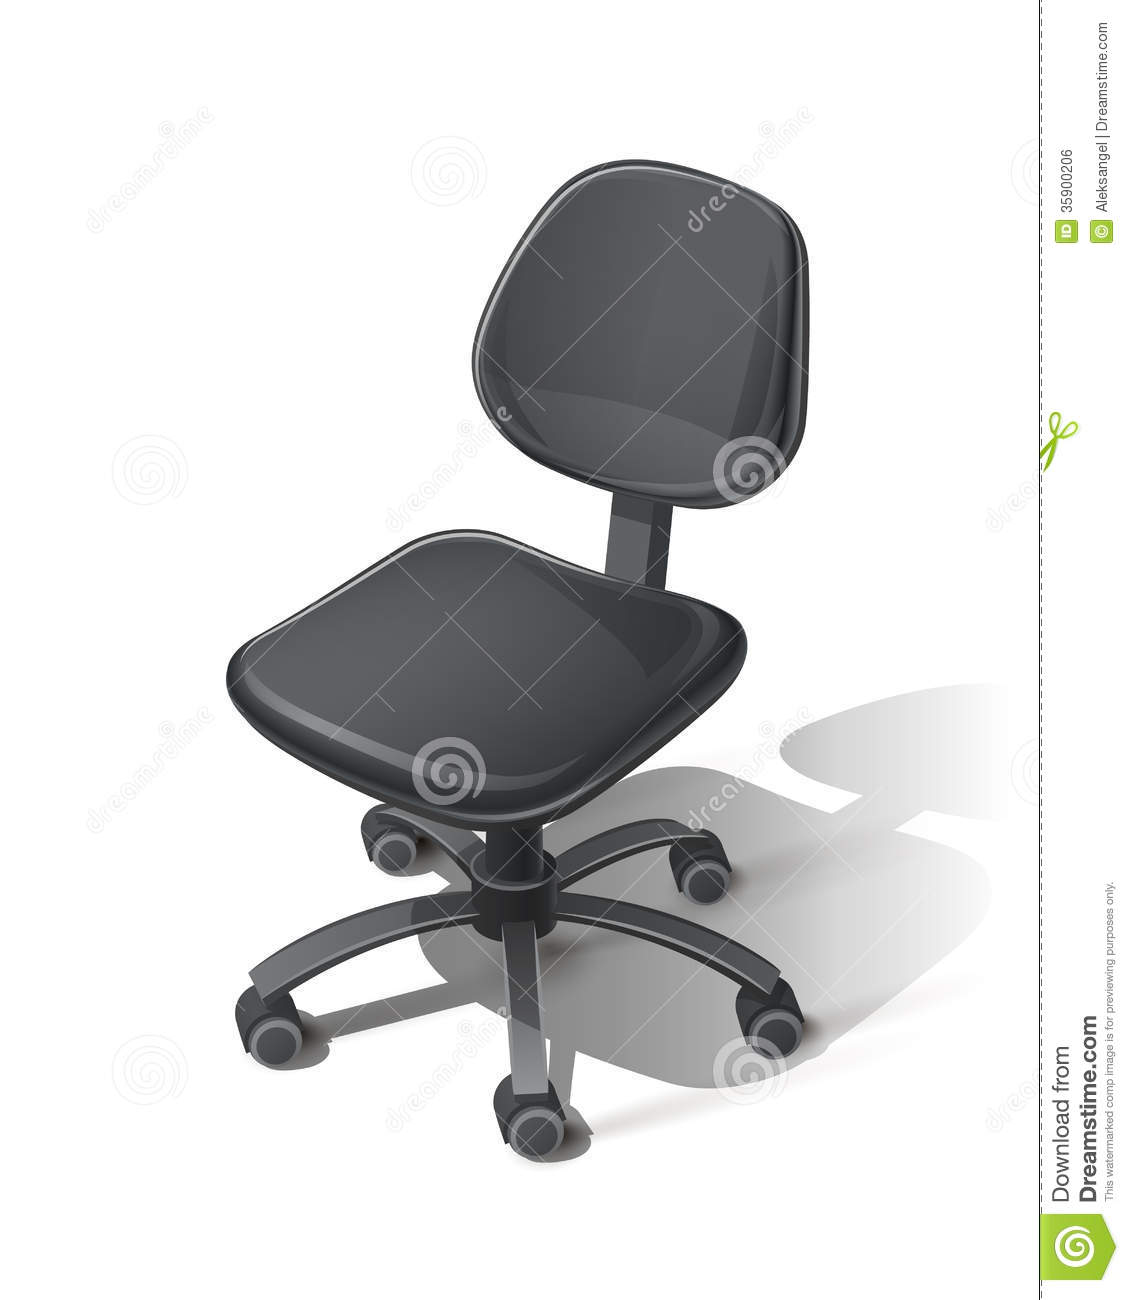 office chair illustration hanging outdoor chairs black royalty free stock image 35900206